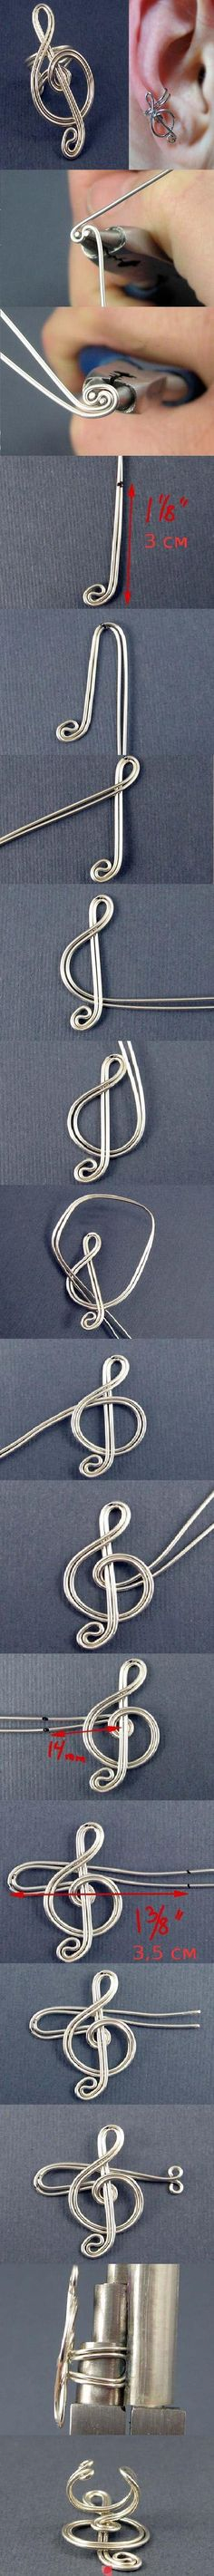 treble clef ear cuff